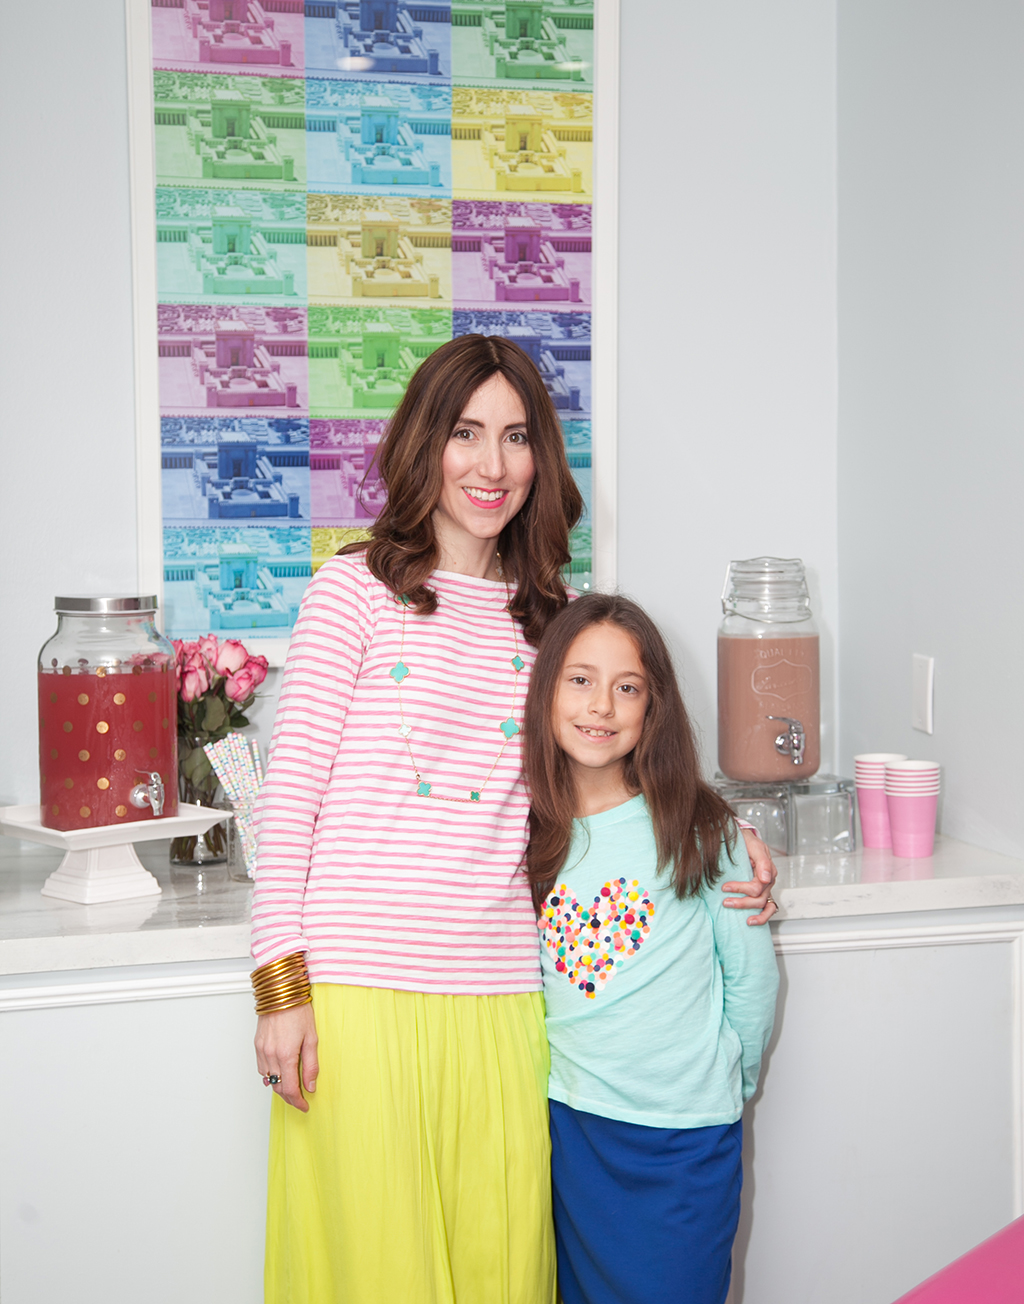 Drinks Station at Nine Year Old Girl Birthday Party by Yael from Jewish Latin Princess